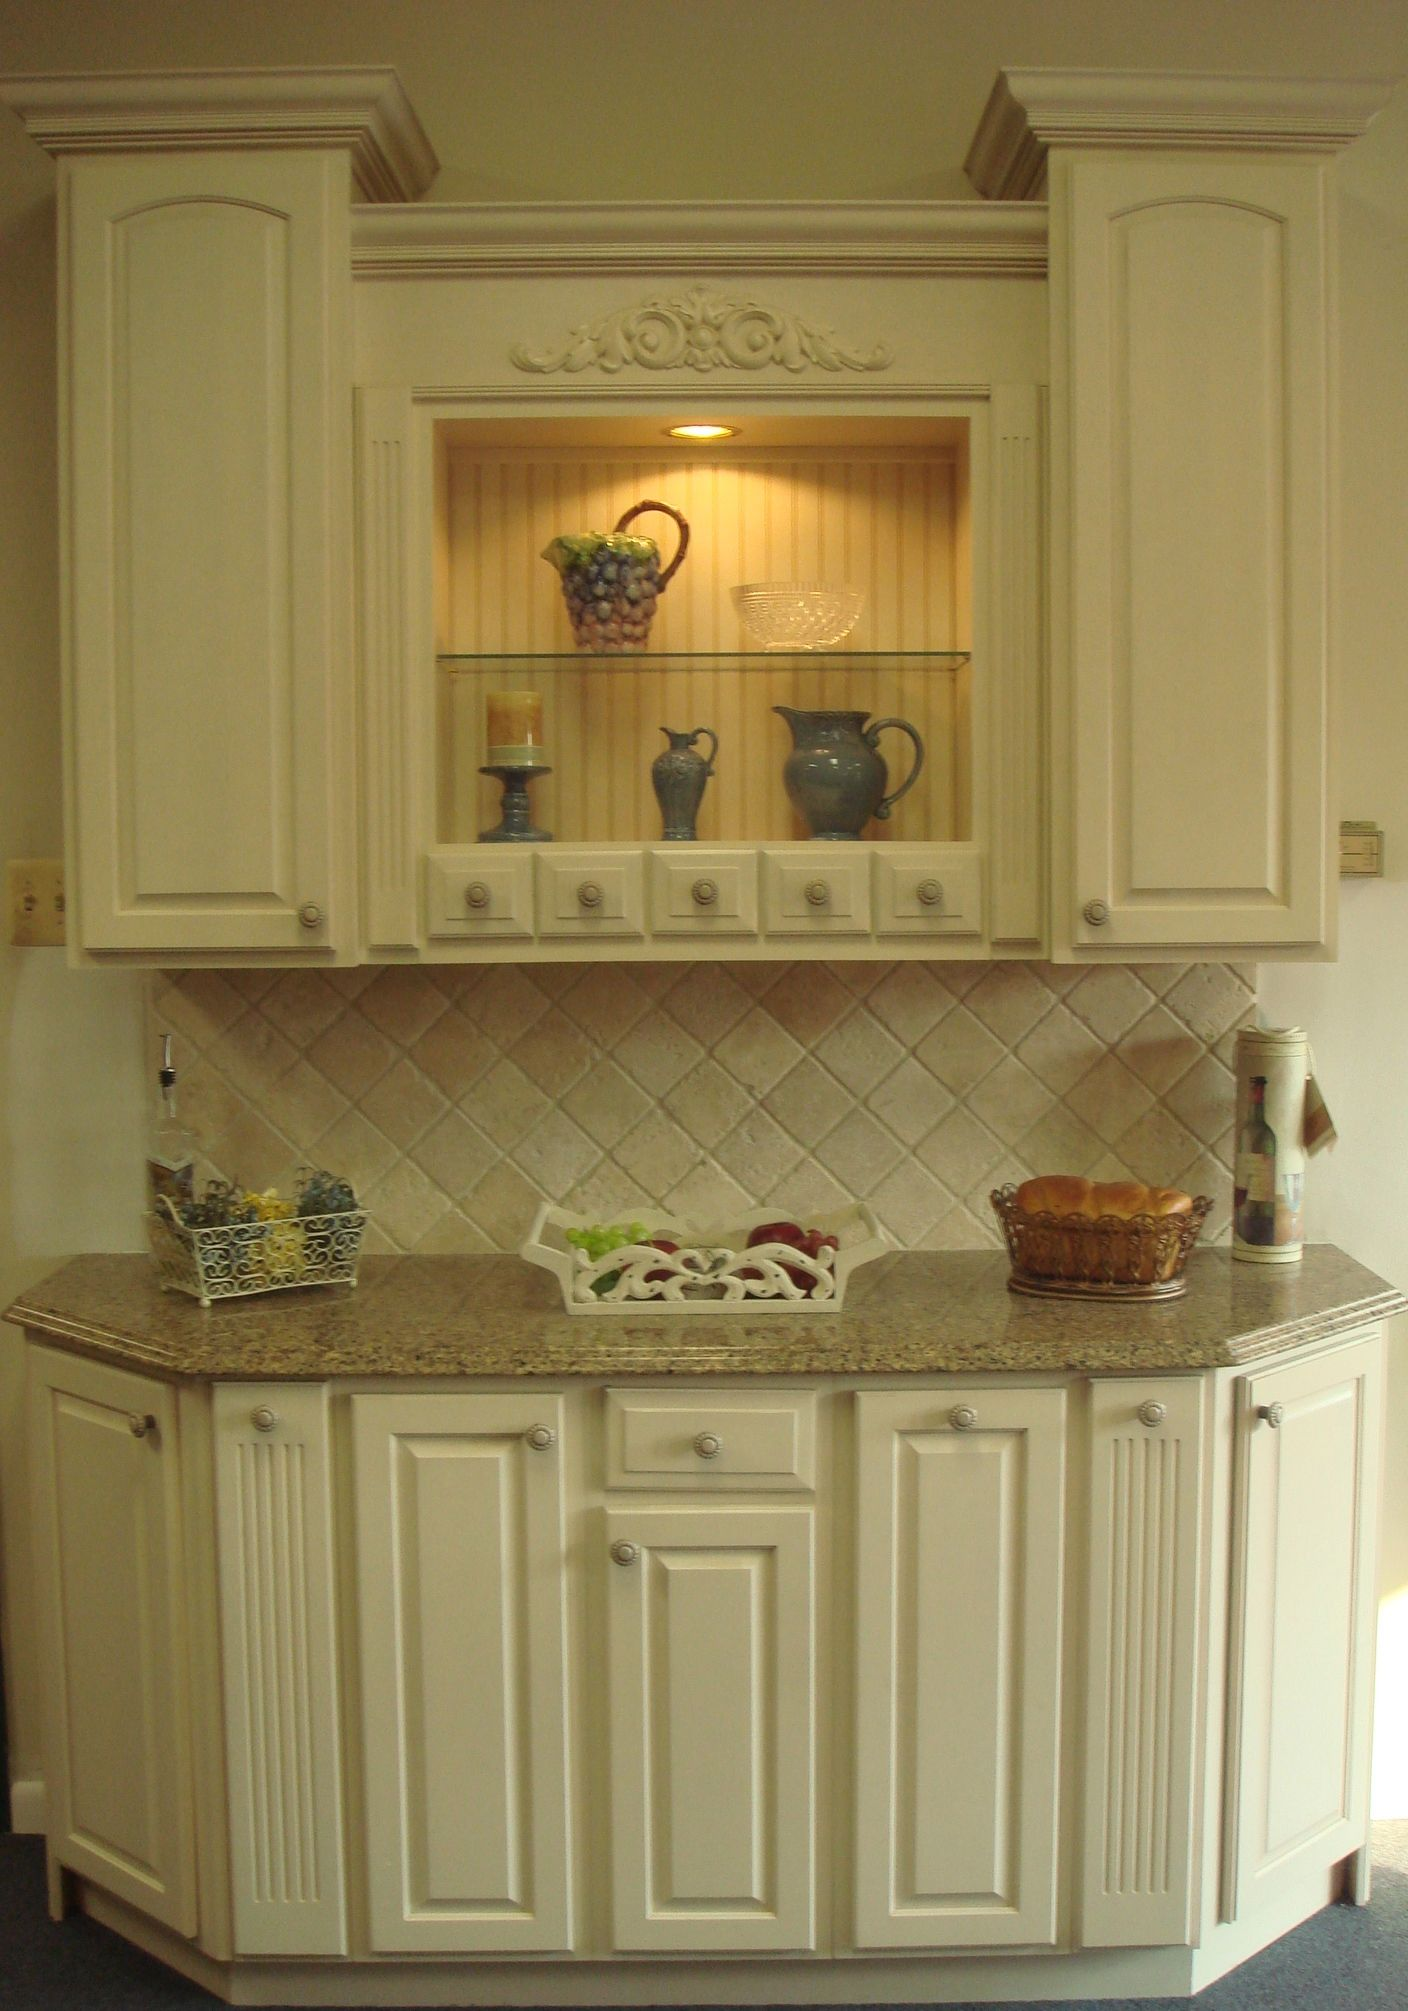 Yorktowne Antique White Cabinets With Sienna Ridge Silestone Countertop And Tumble Stone Tile Ba Shabby Chic Kitchen Kitchen Remodel Antique White Cabinets